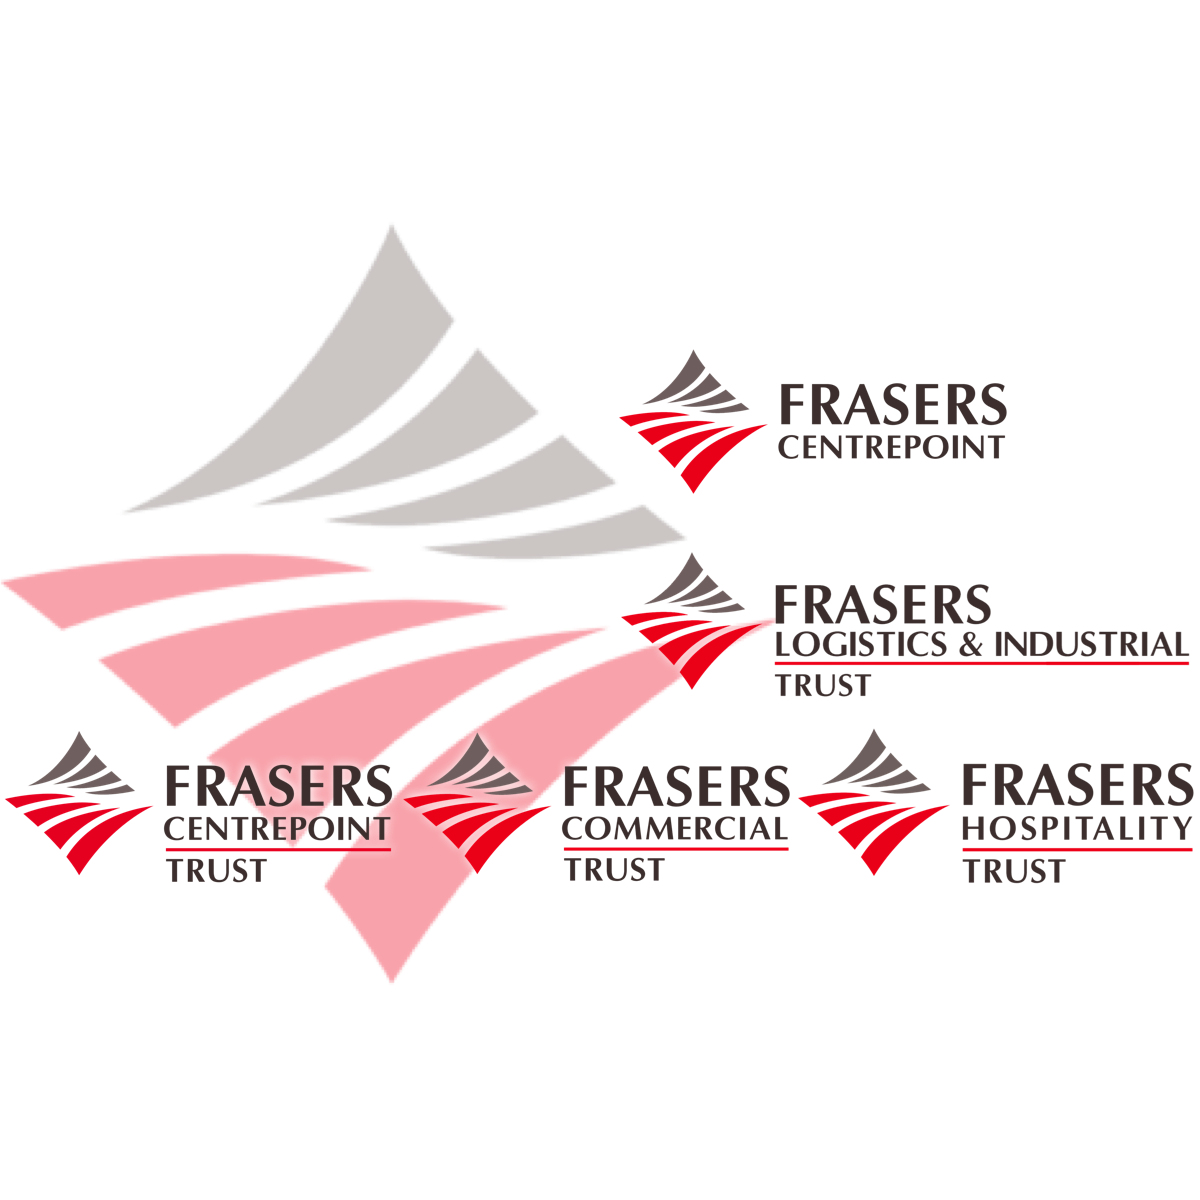 Frasers Property Group - DBS Vickers 2017-05-30: Winds Of Change